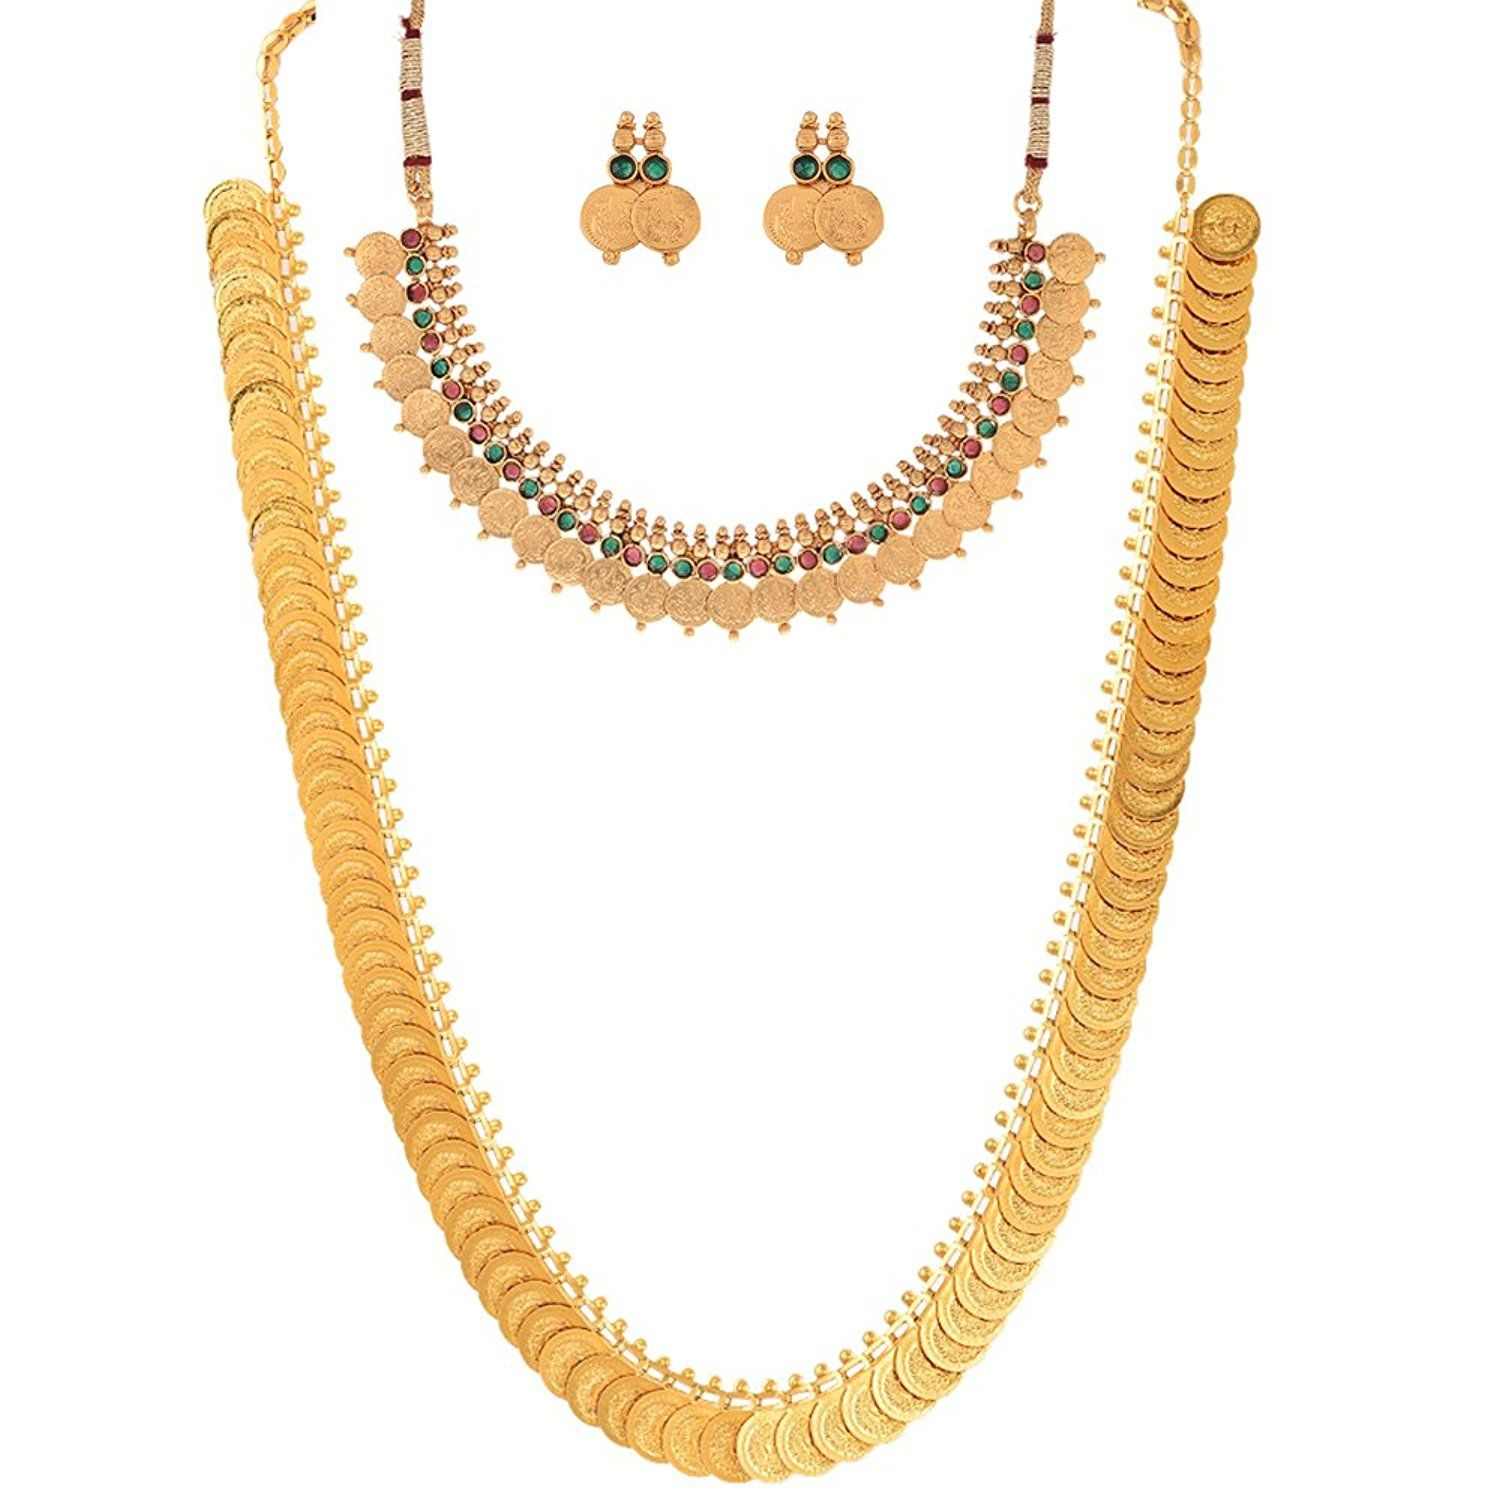 Buy Zeneme Red Gold-Plated Coin Chain Long Necklace, Short Chain ...